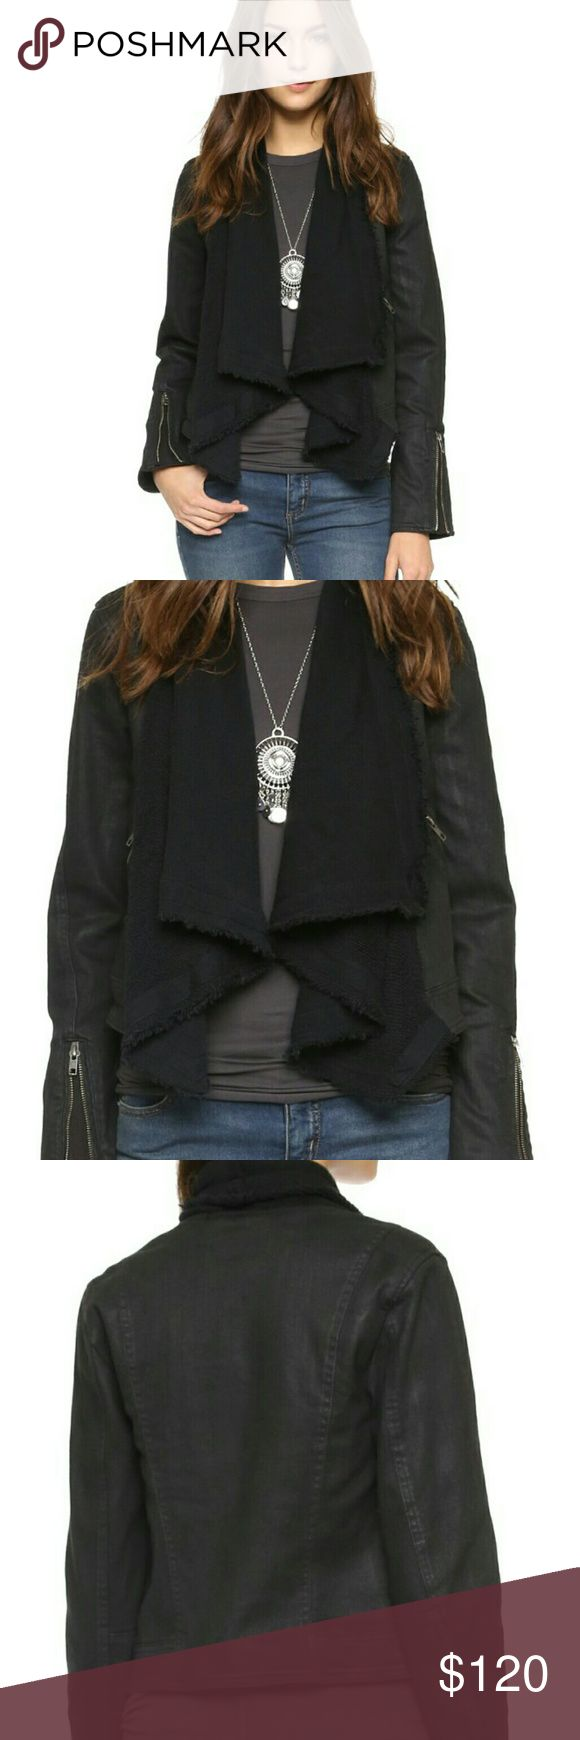 Free People Jacket NWT Free people black comb jacket with frayed shawl. New with tags. Size 2. Fits medium/large. Reasonable offers welcome Free People Jackets & Coats